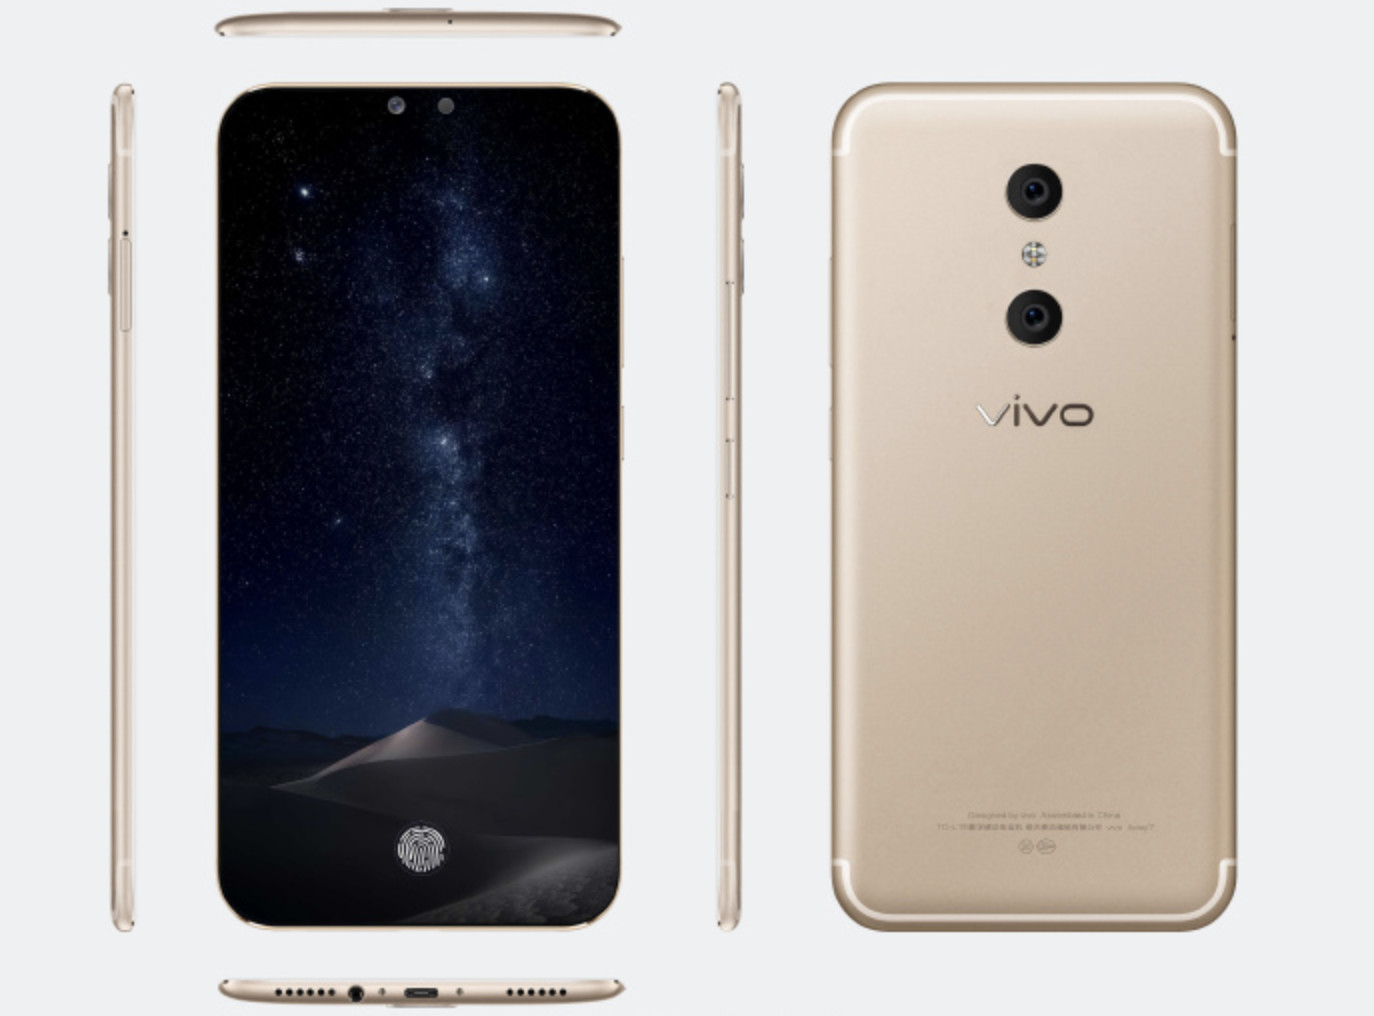 Smartphone Vivo Xplay7 - a new record for the amount of memory